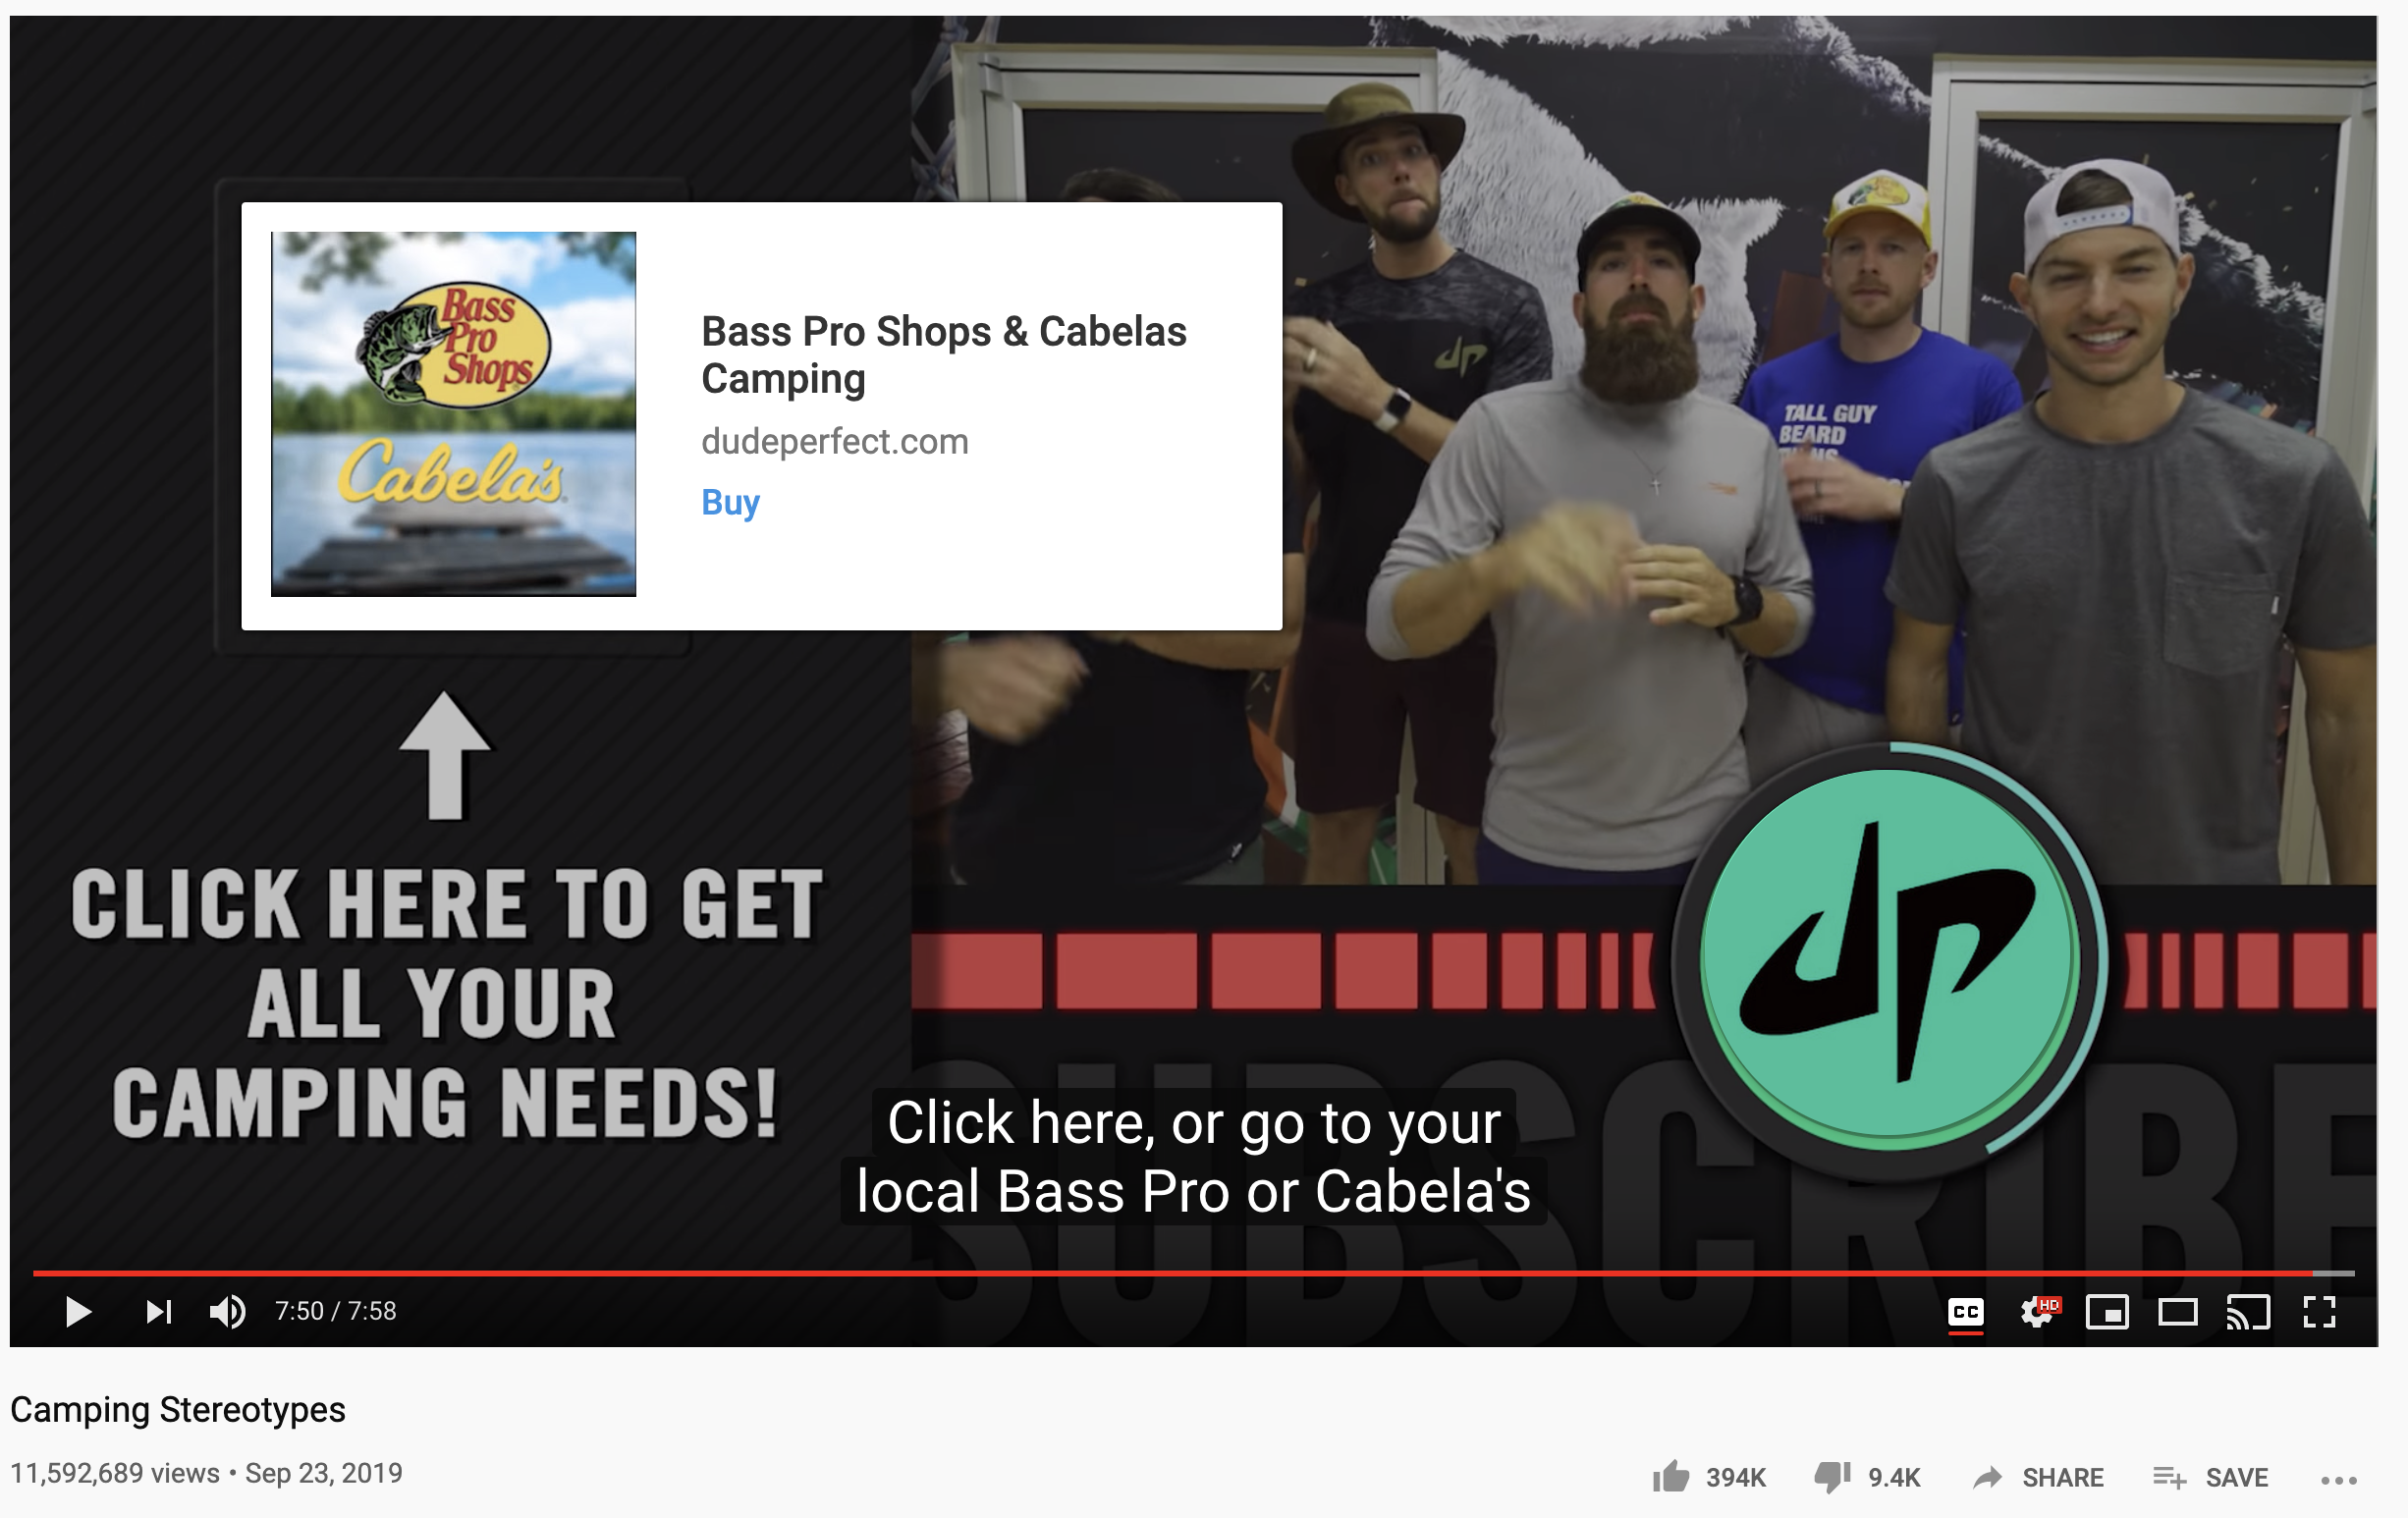 Dude Perfect call to action example